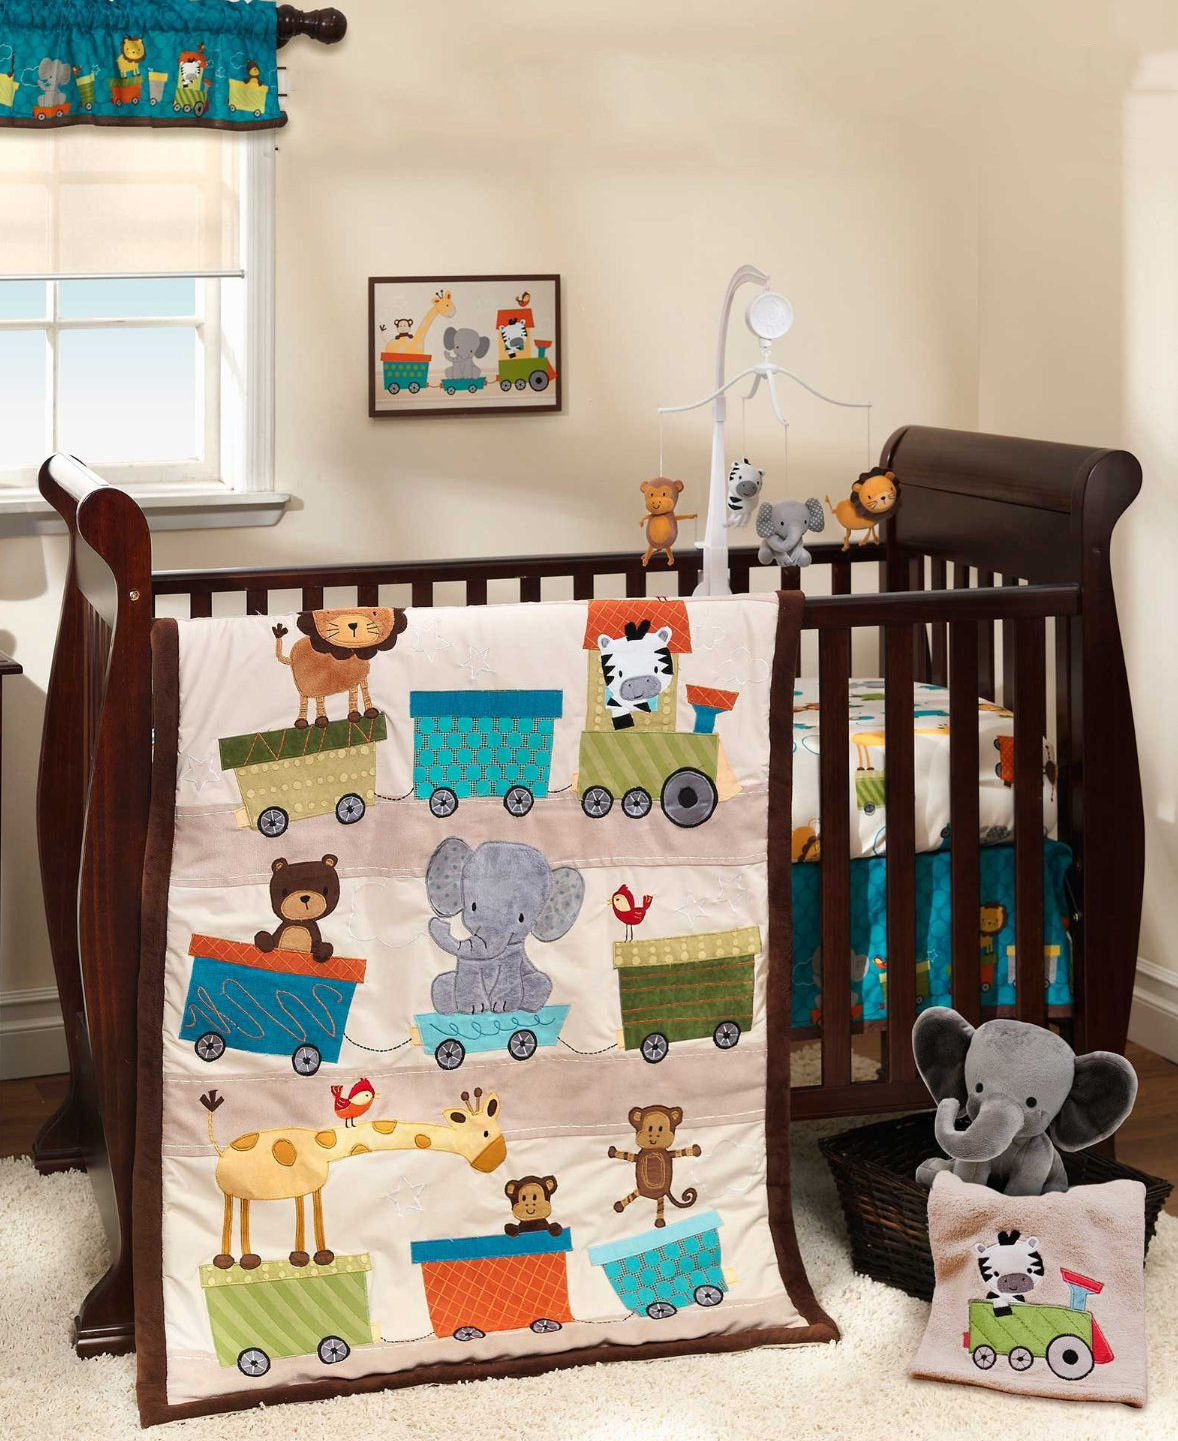 Baby circus animals train theme baby bedding for the crib with matching decor.